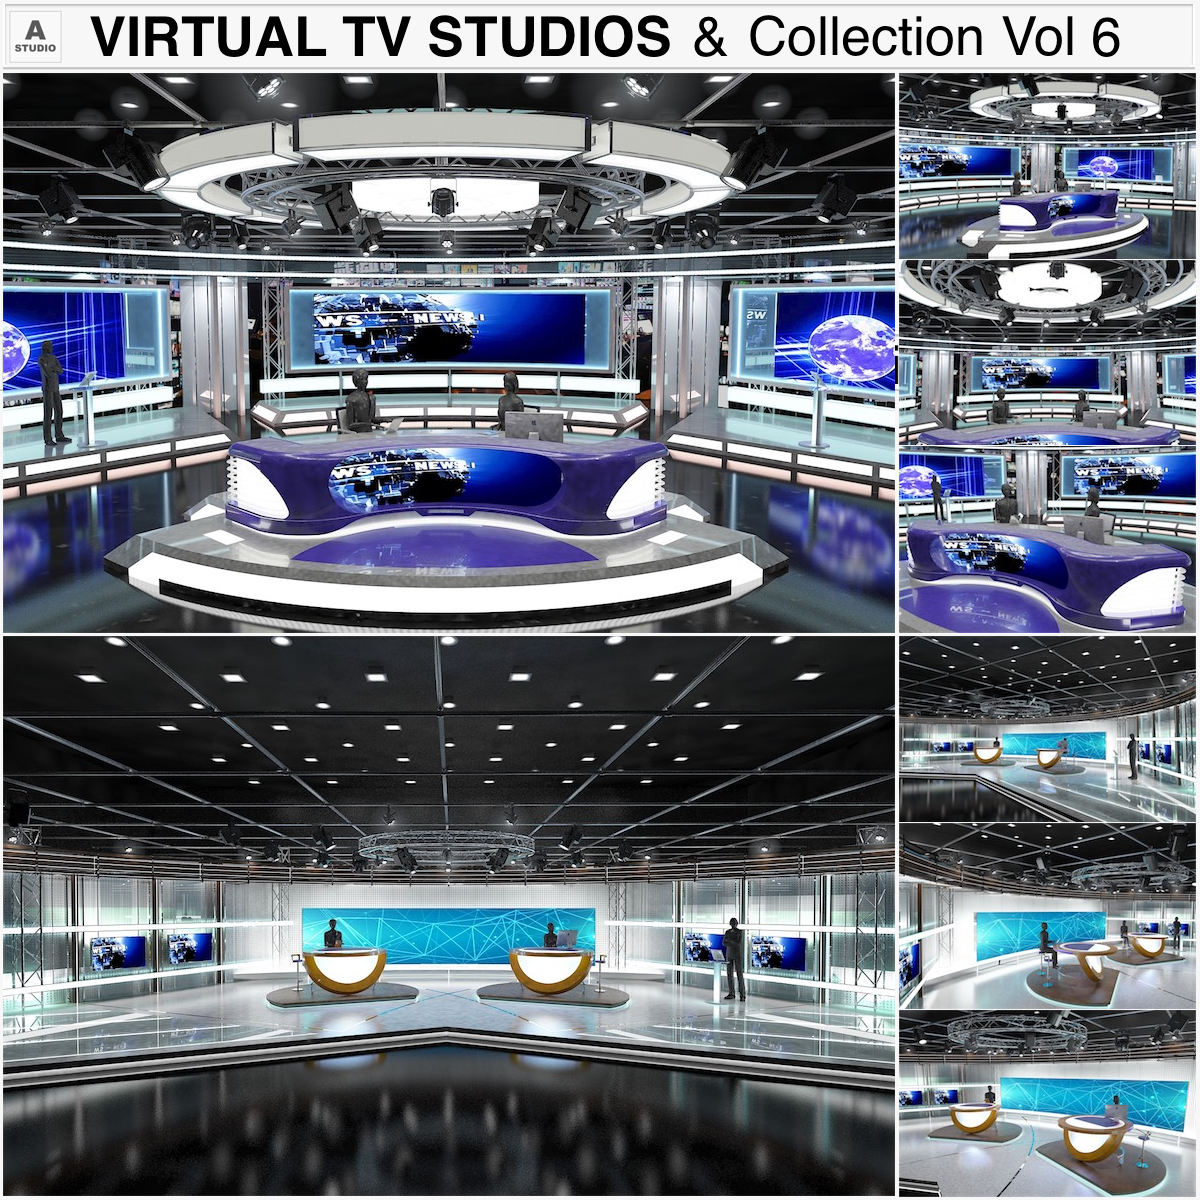 virtual tv studiji kolekcija vol 6 3d model max dxf dwg fbx obj 223361